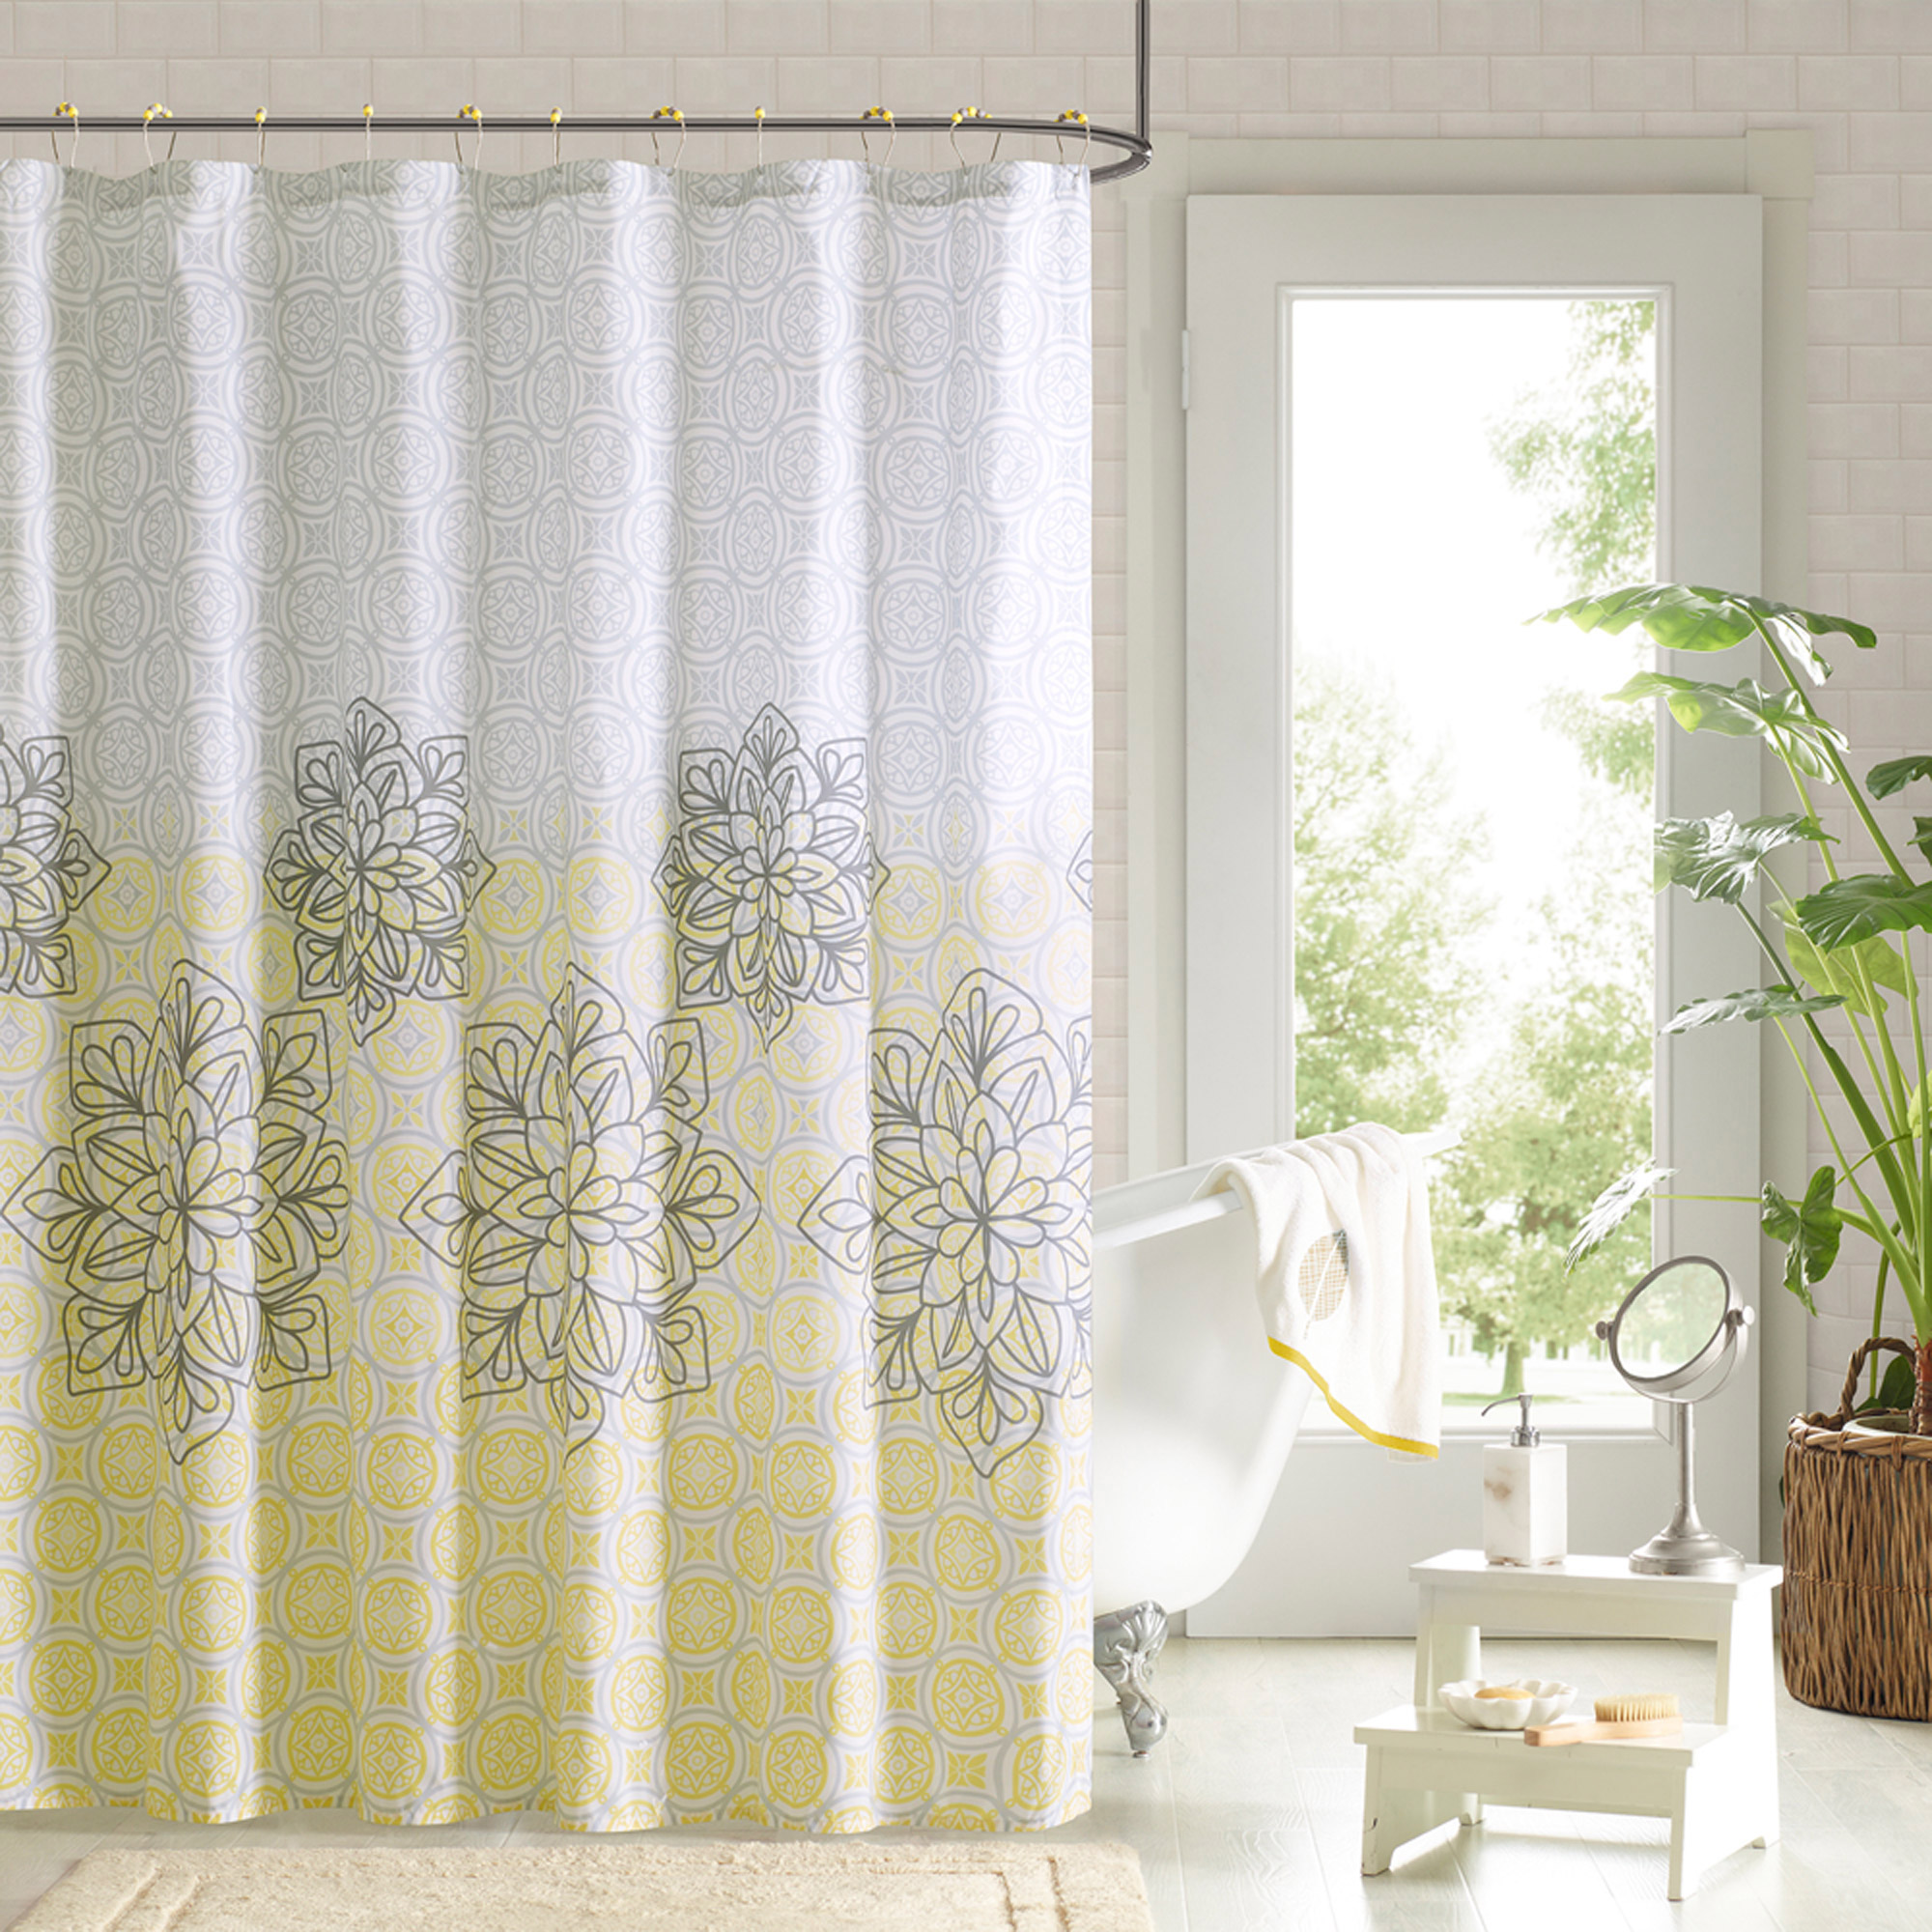 Flowers Shower Curtain | Blue and Gold Shower Curtain | Floral Shower Curtain